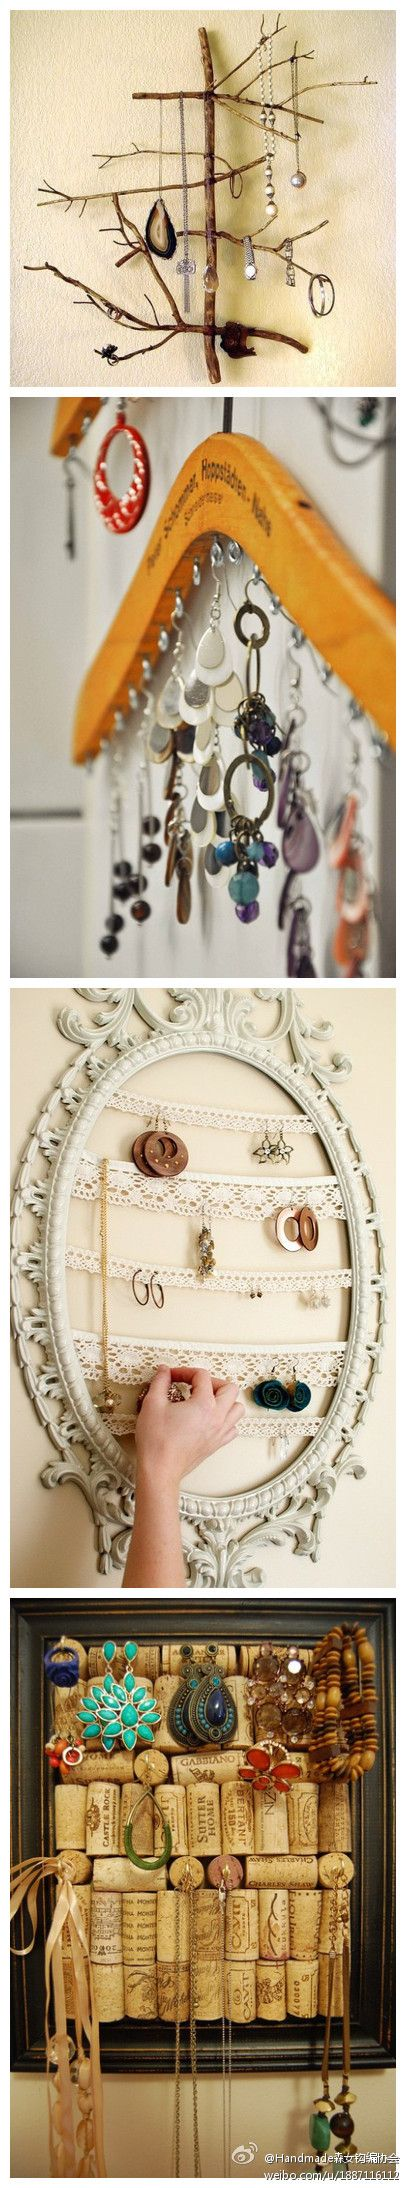 Fun jewelry holders, love the old hanger!@Taylor